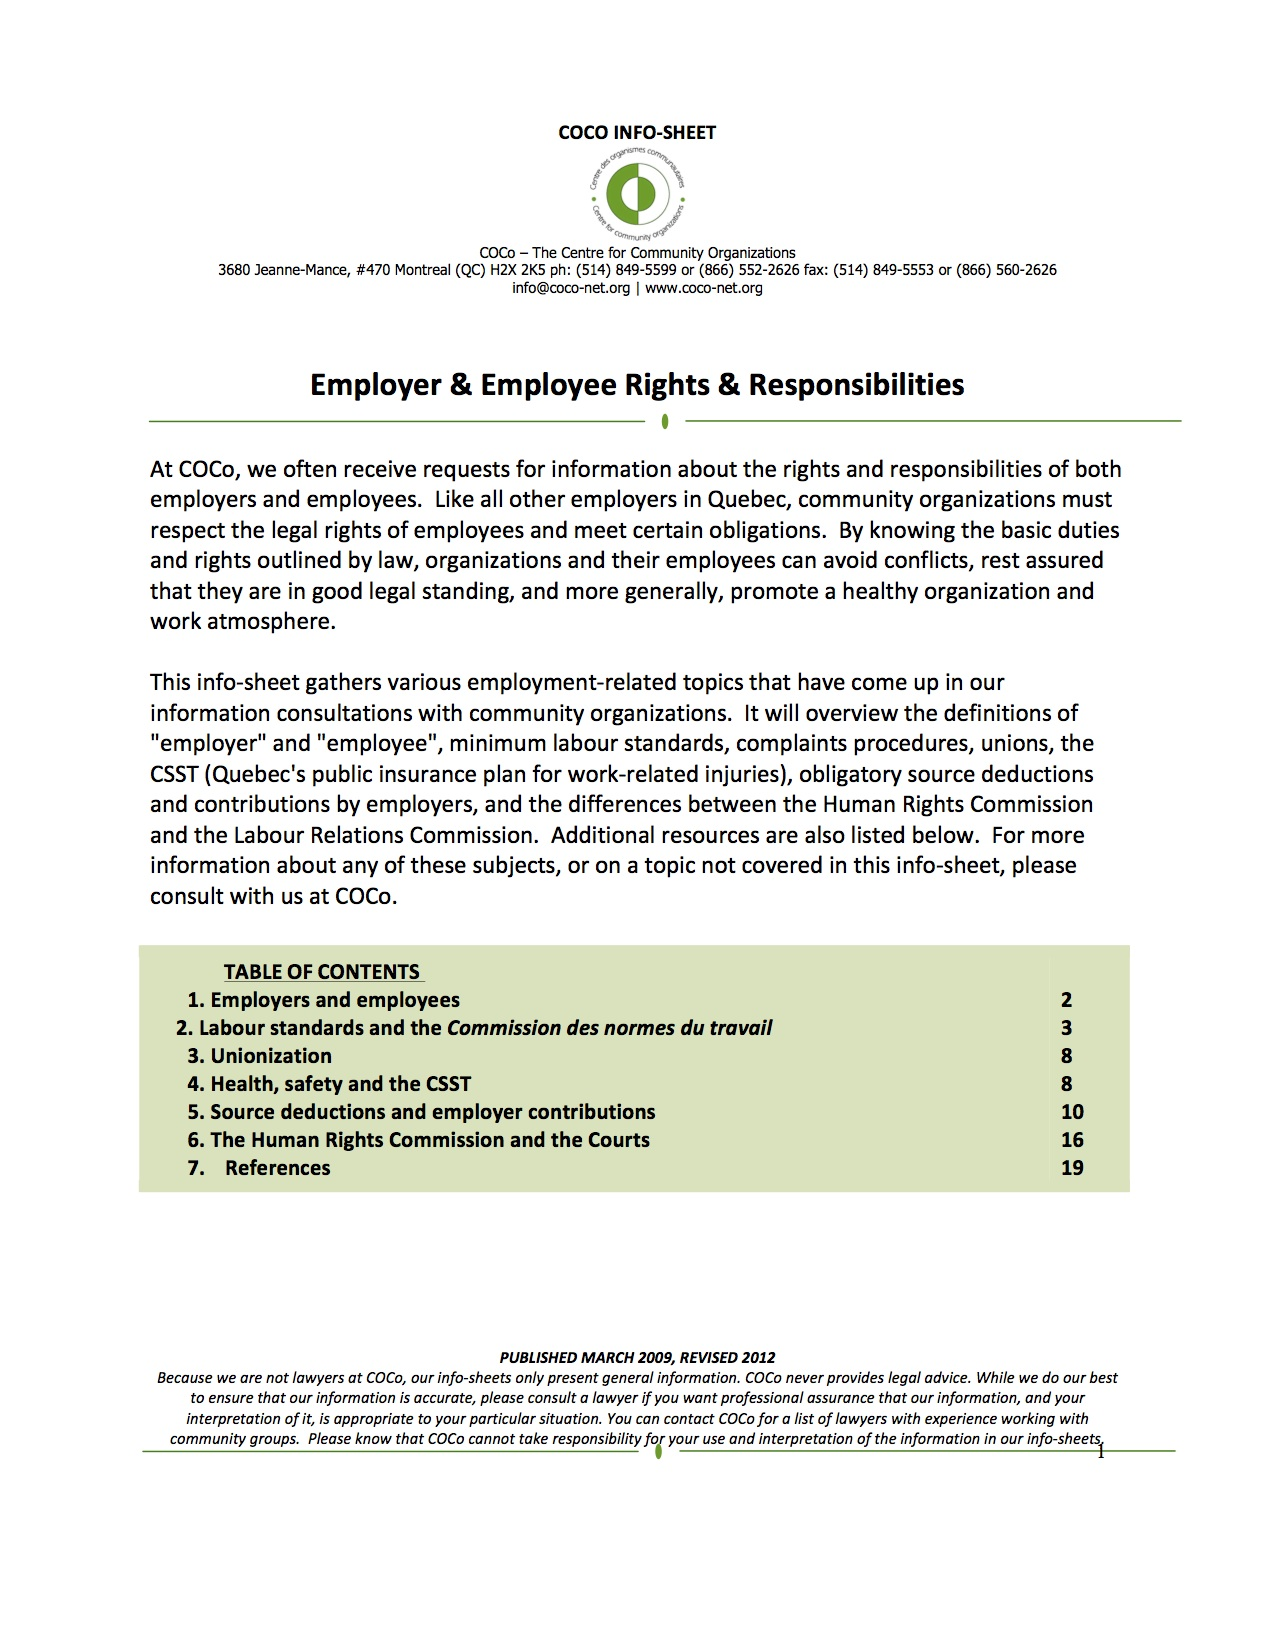 employee rights responsibilities and organizational procedures 1 explain the concepts of employee rights and responsibilities to include: due process, duty of diligence, duty of obedience, duty of loyalty, and employment-at-will 2 list at least four employee involvement strategies and describe how each contributes to organizational performance.